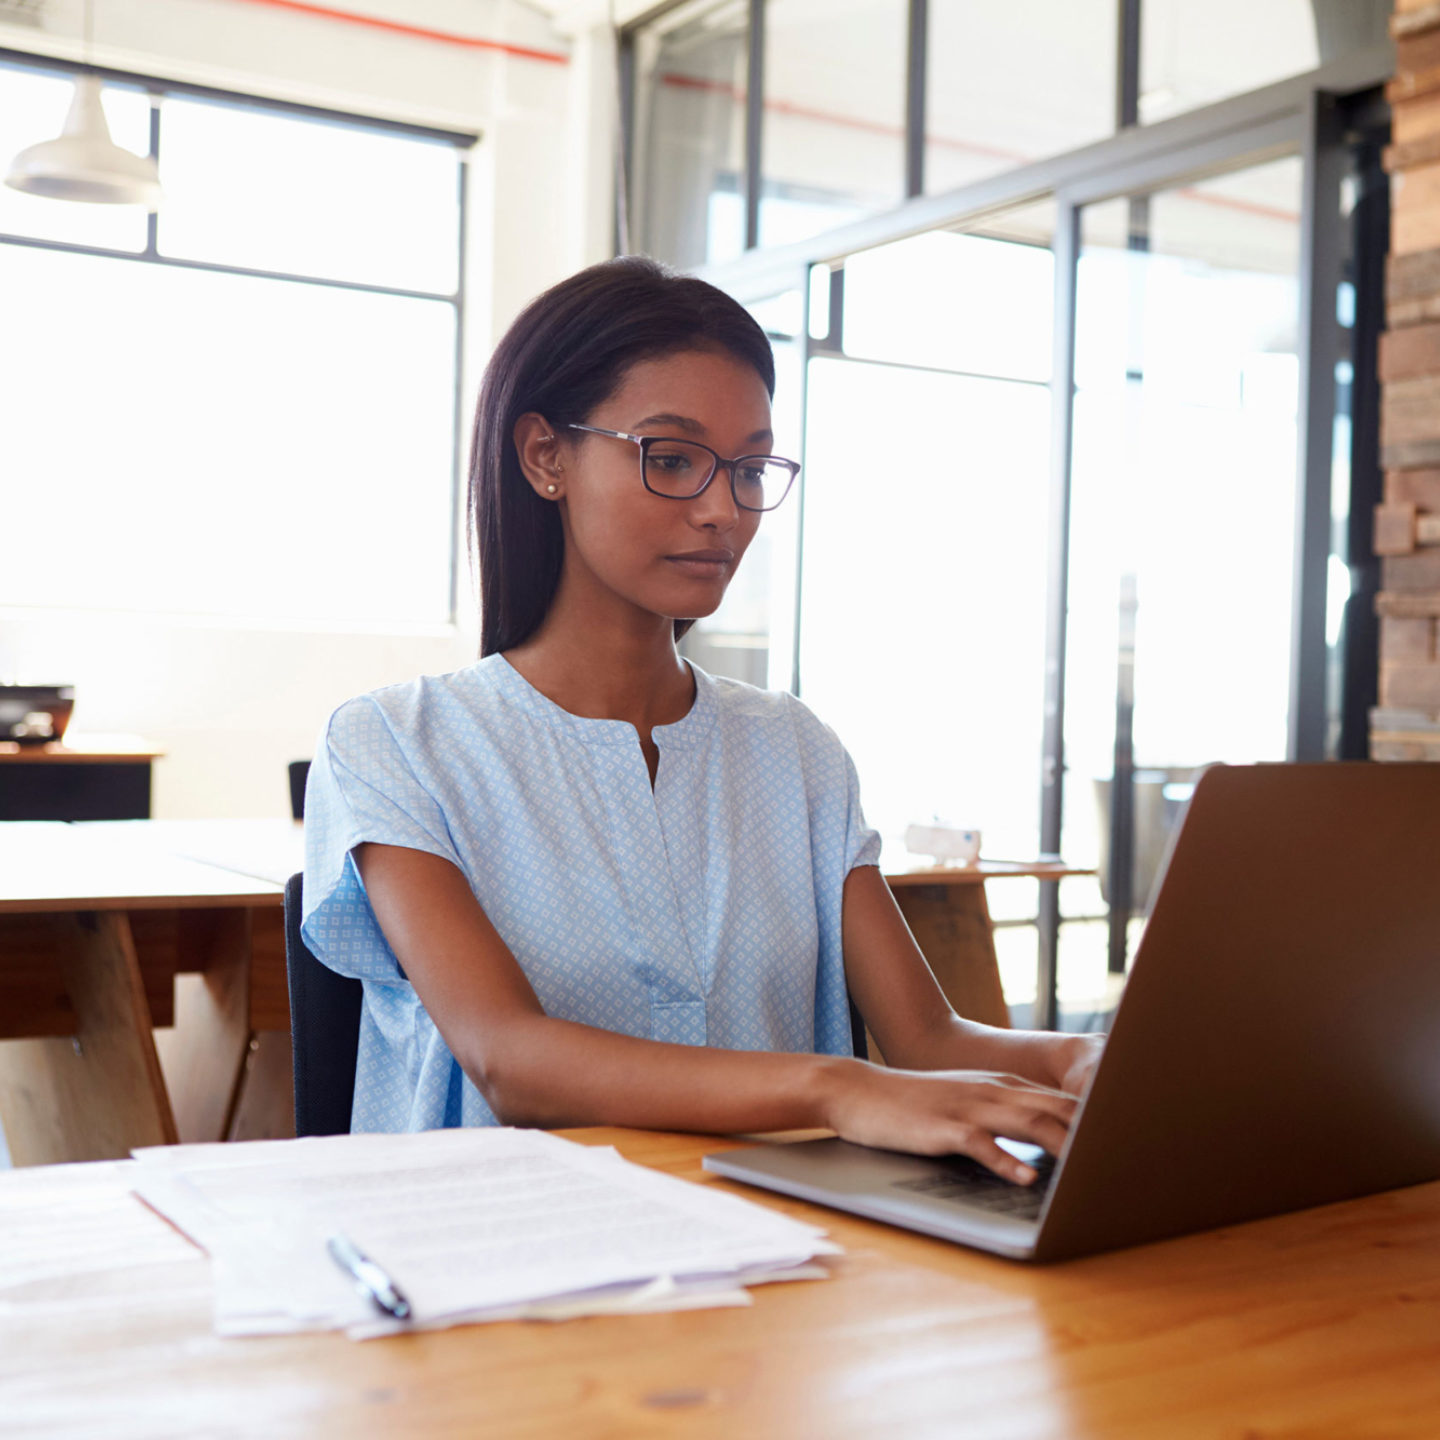 Young black woman working in office with laptop computer